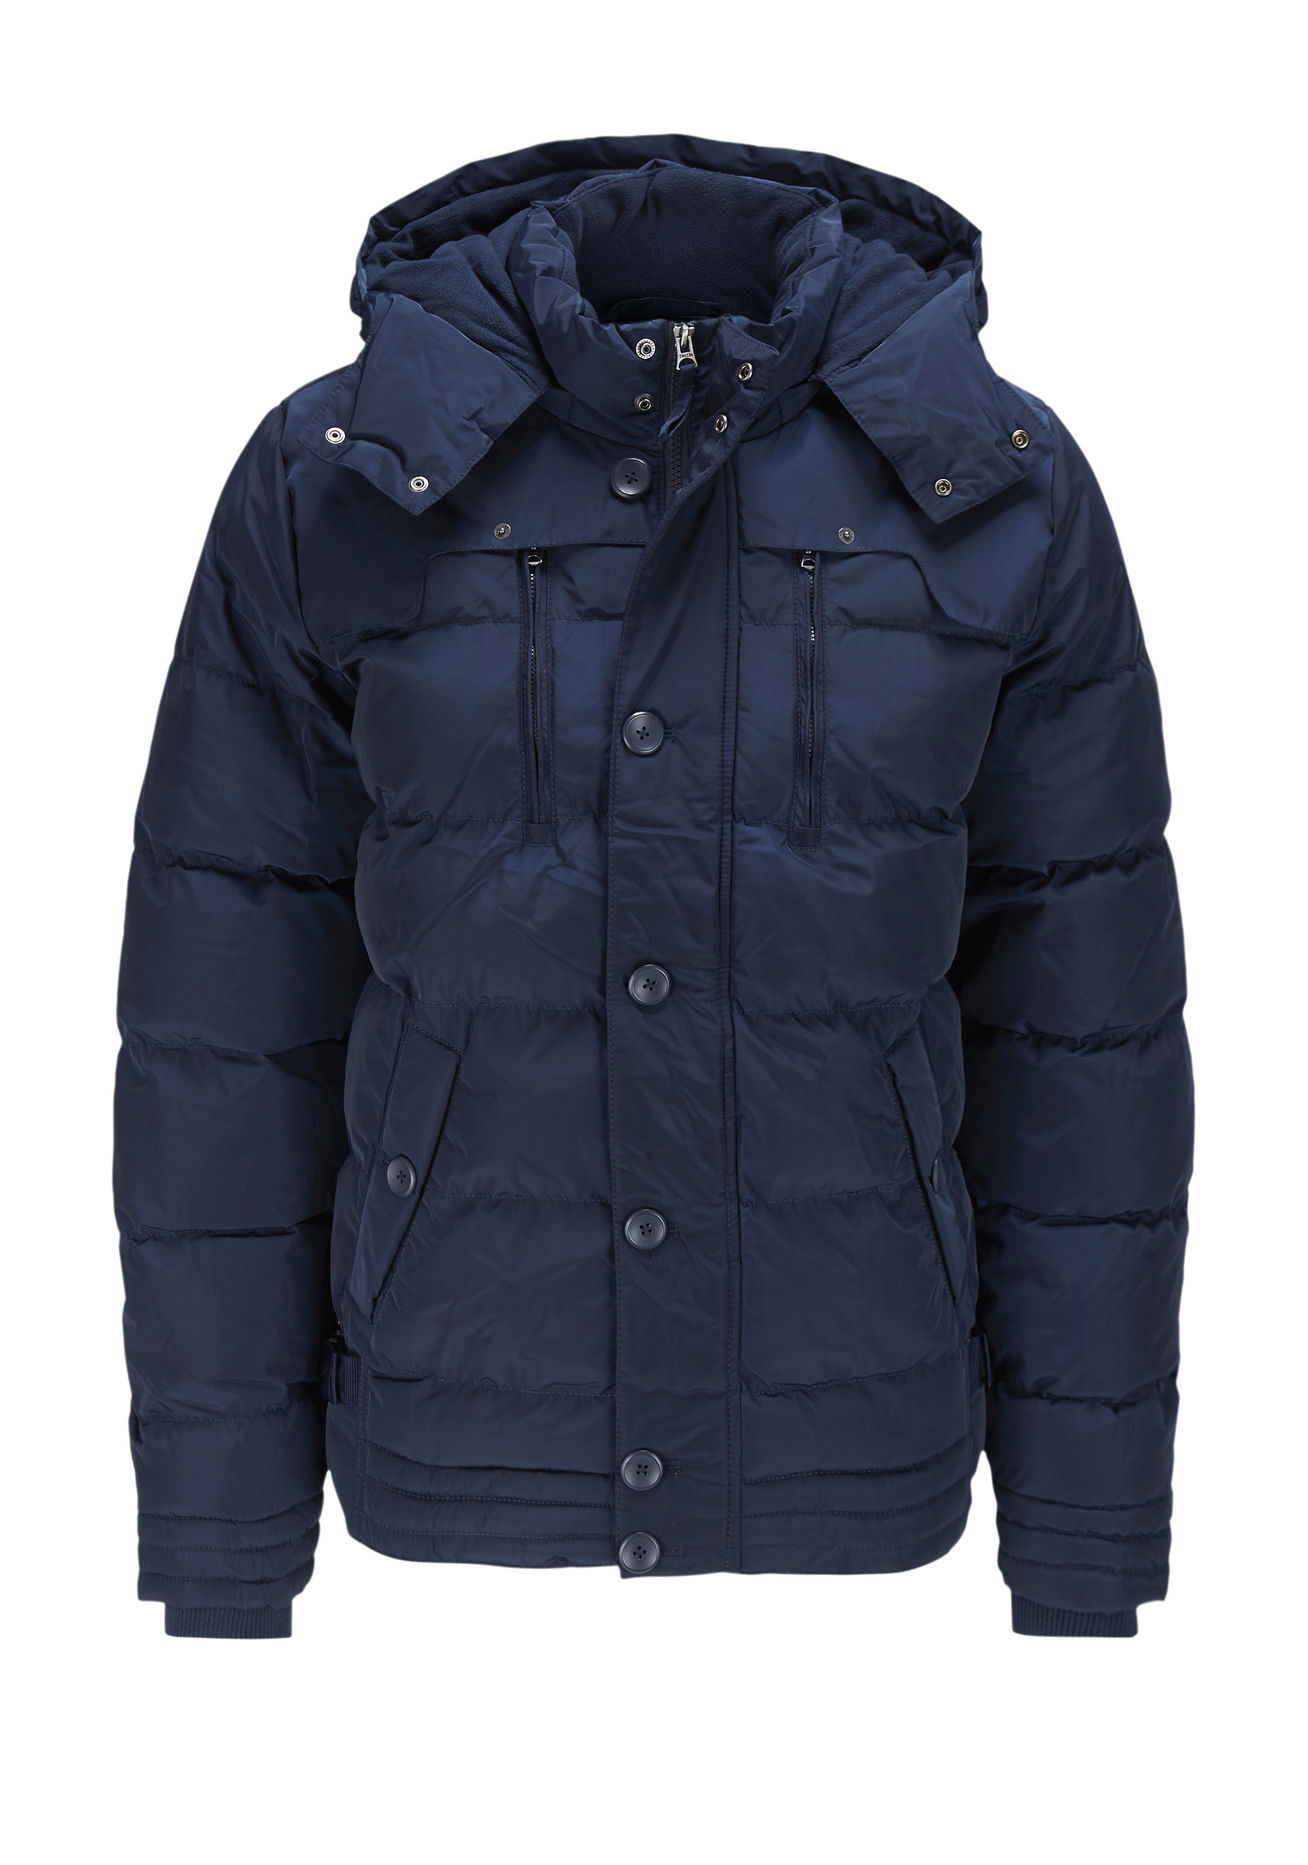 JacketSizeS Hooded About Style Mustang Details Original Xxlwinter Show Title Jacket To Quilted Mens J3cTF15ulK